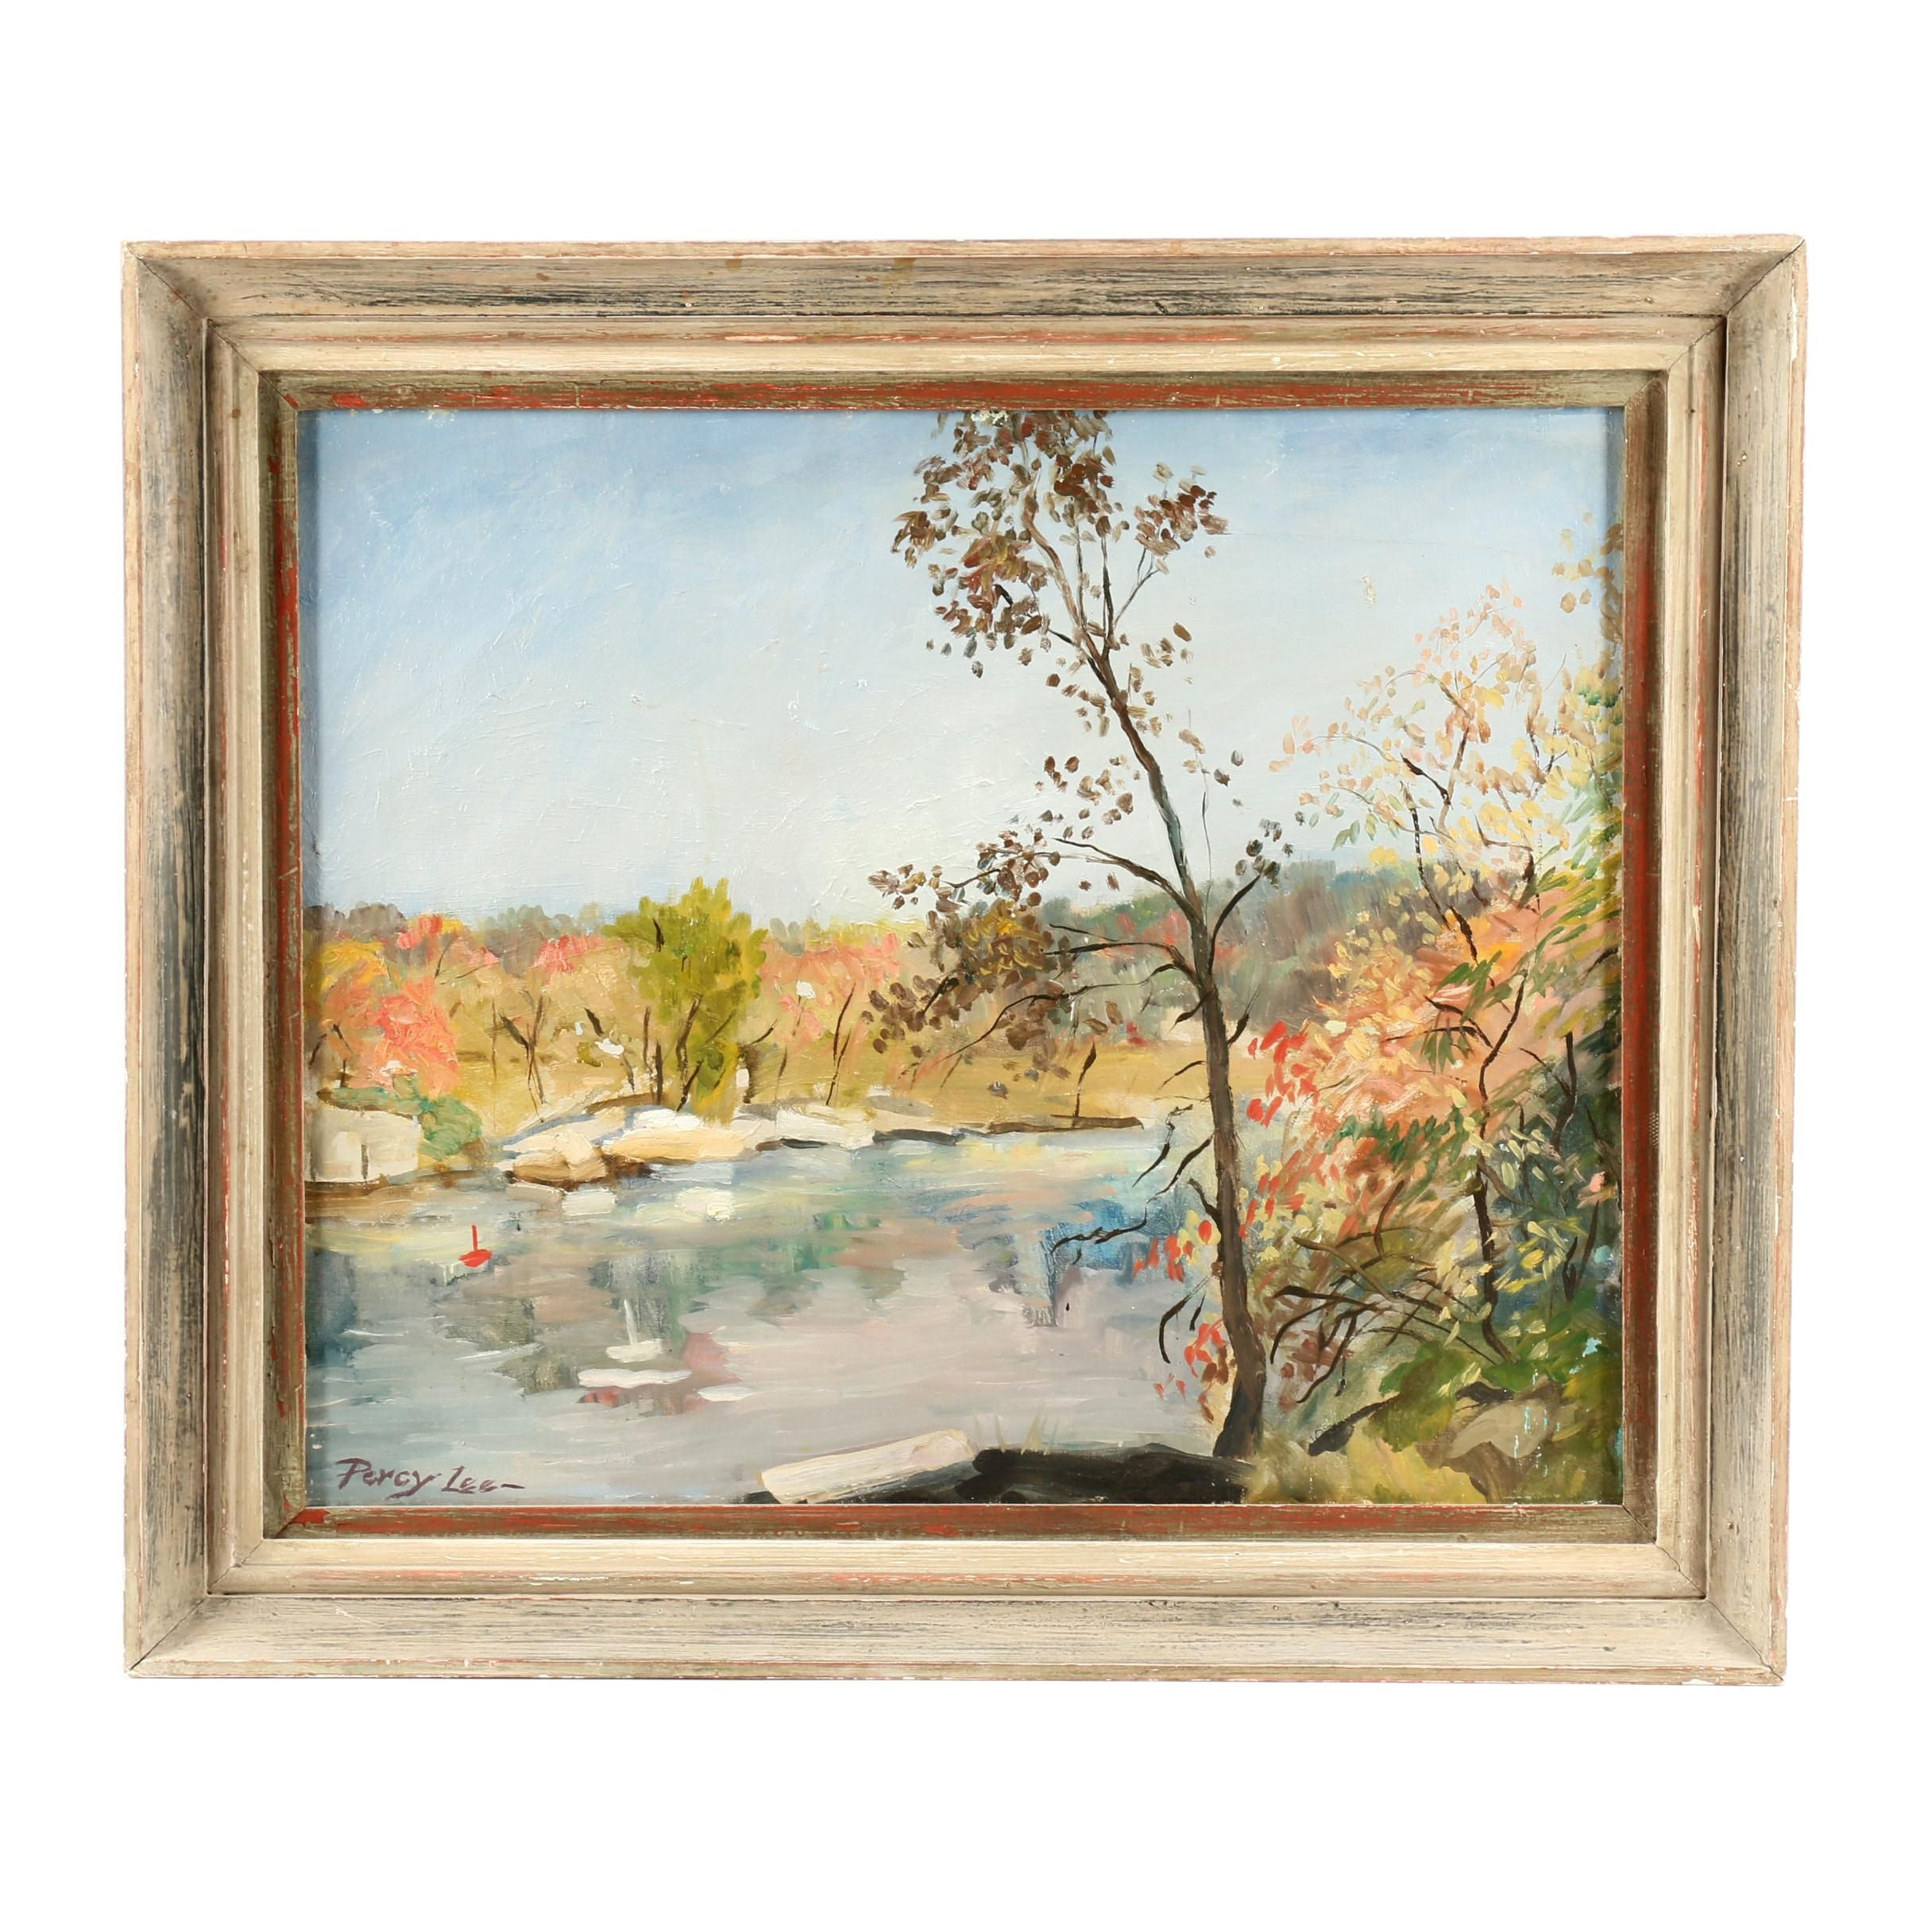 Percy Lee Mid 20th Century Landscape Oil Painting